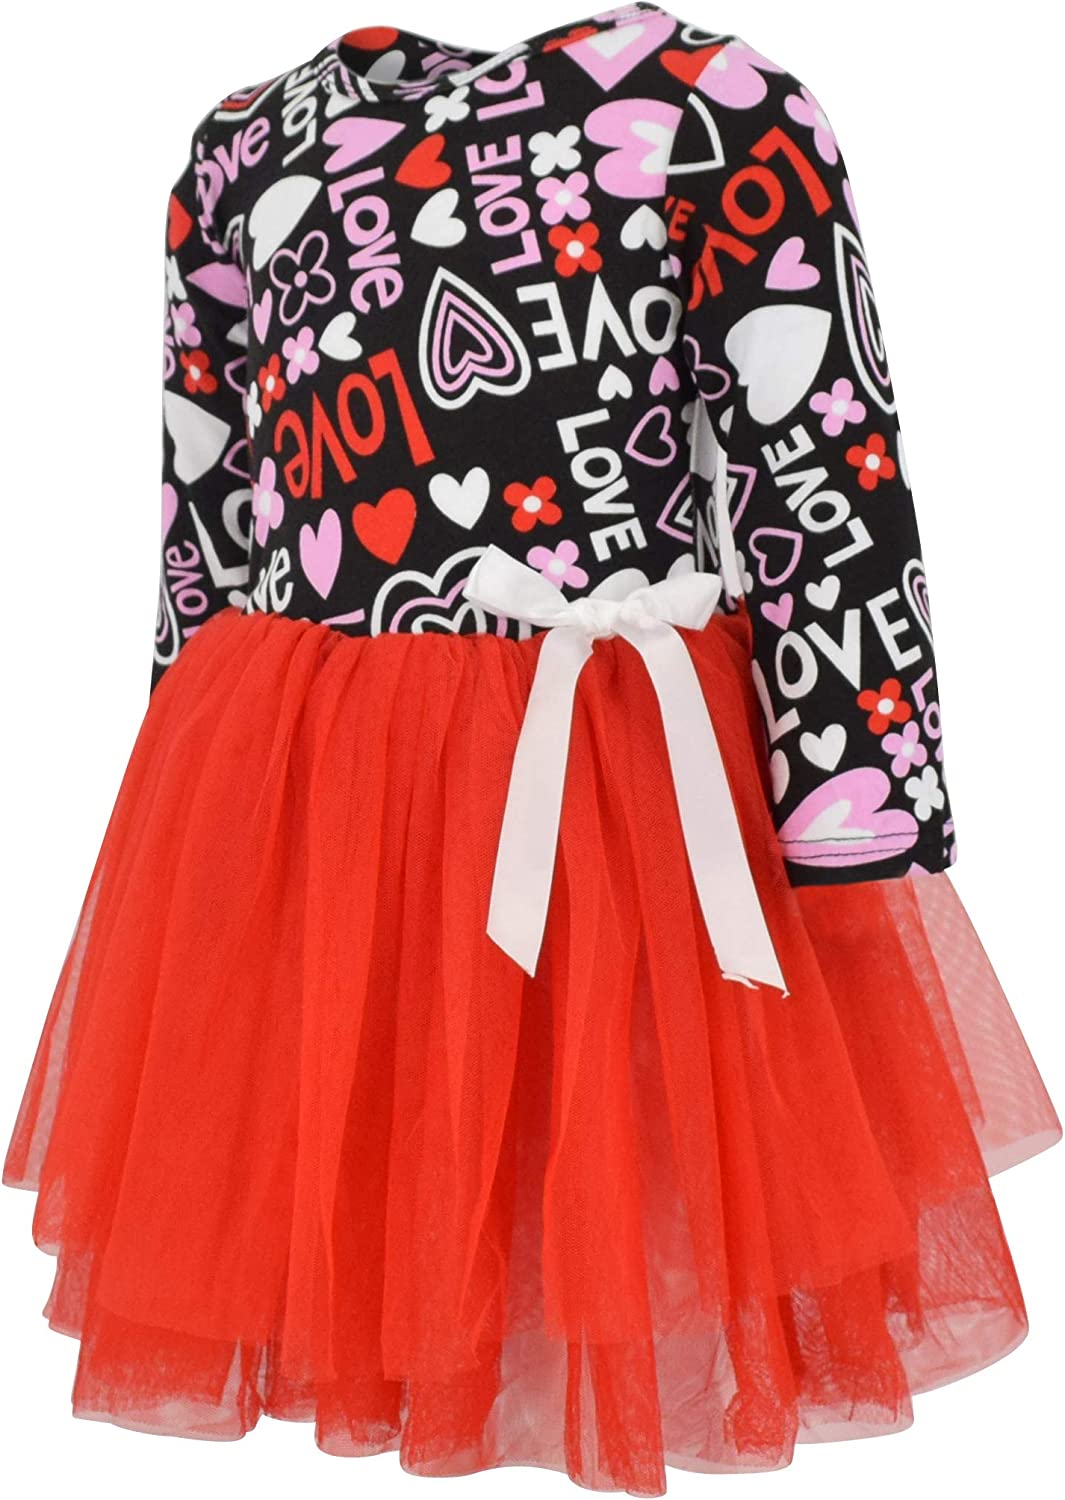 Toddler Girl Dress Baby Girl Valentines Day Dress Heart Love Print Black Splicing Red Mesh Tulle A-line Dress